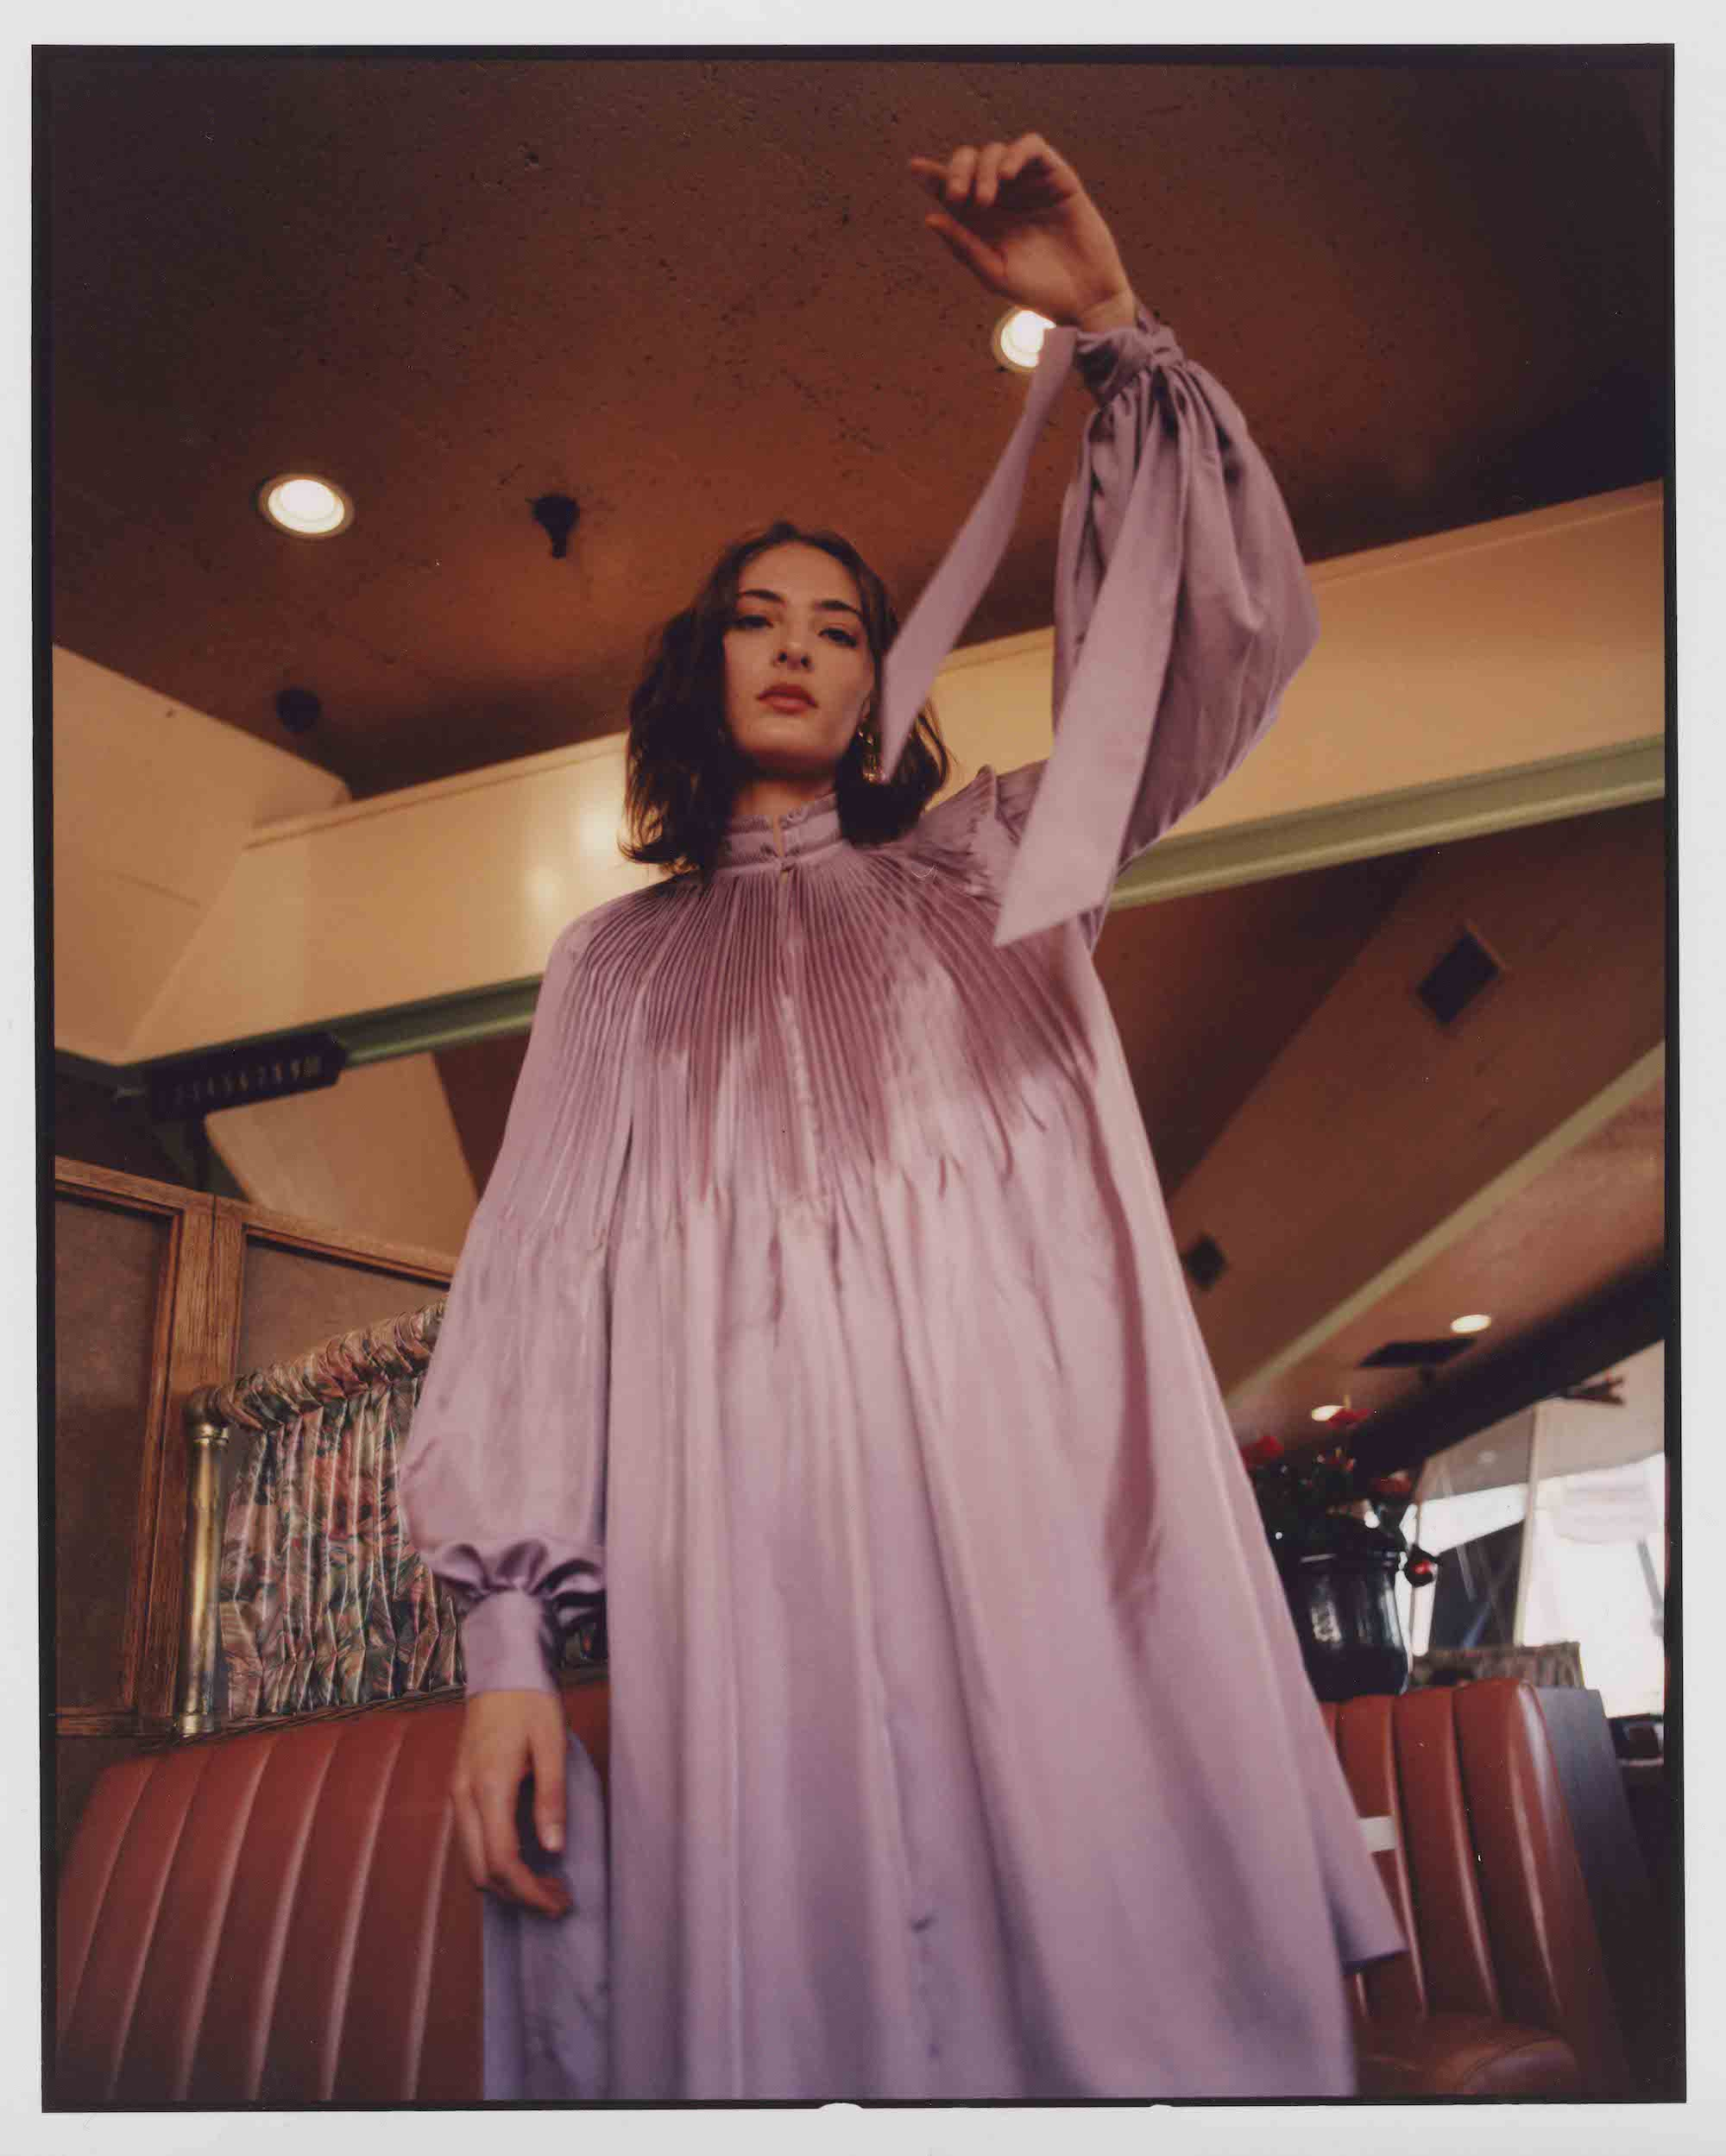 Perfect day fashion editorial in Spring 19 issue of Wonderland pink drape dress